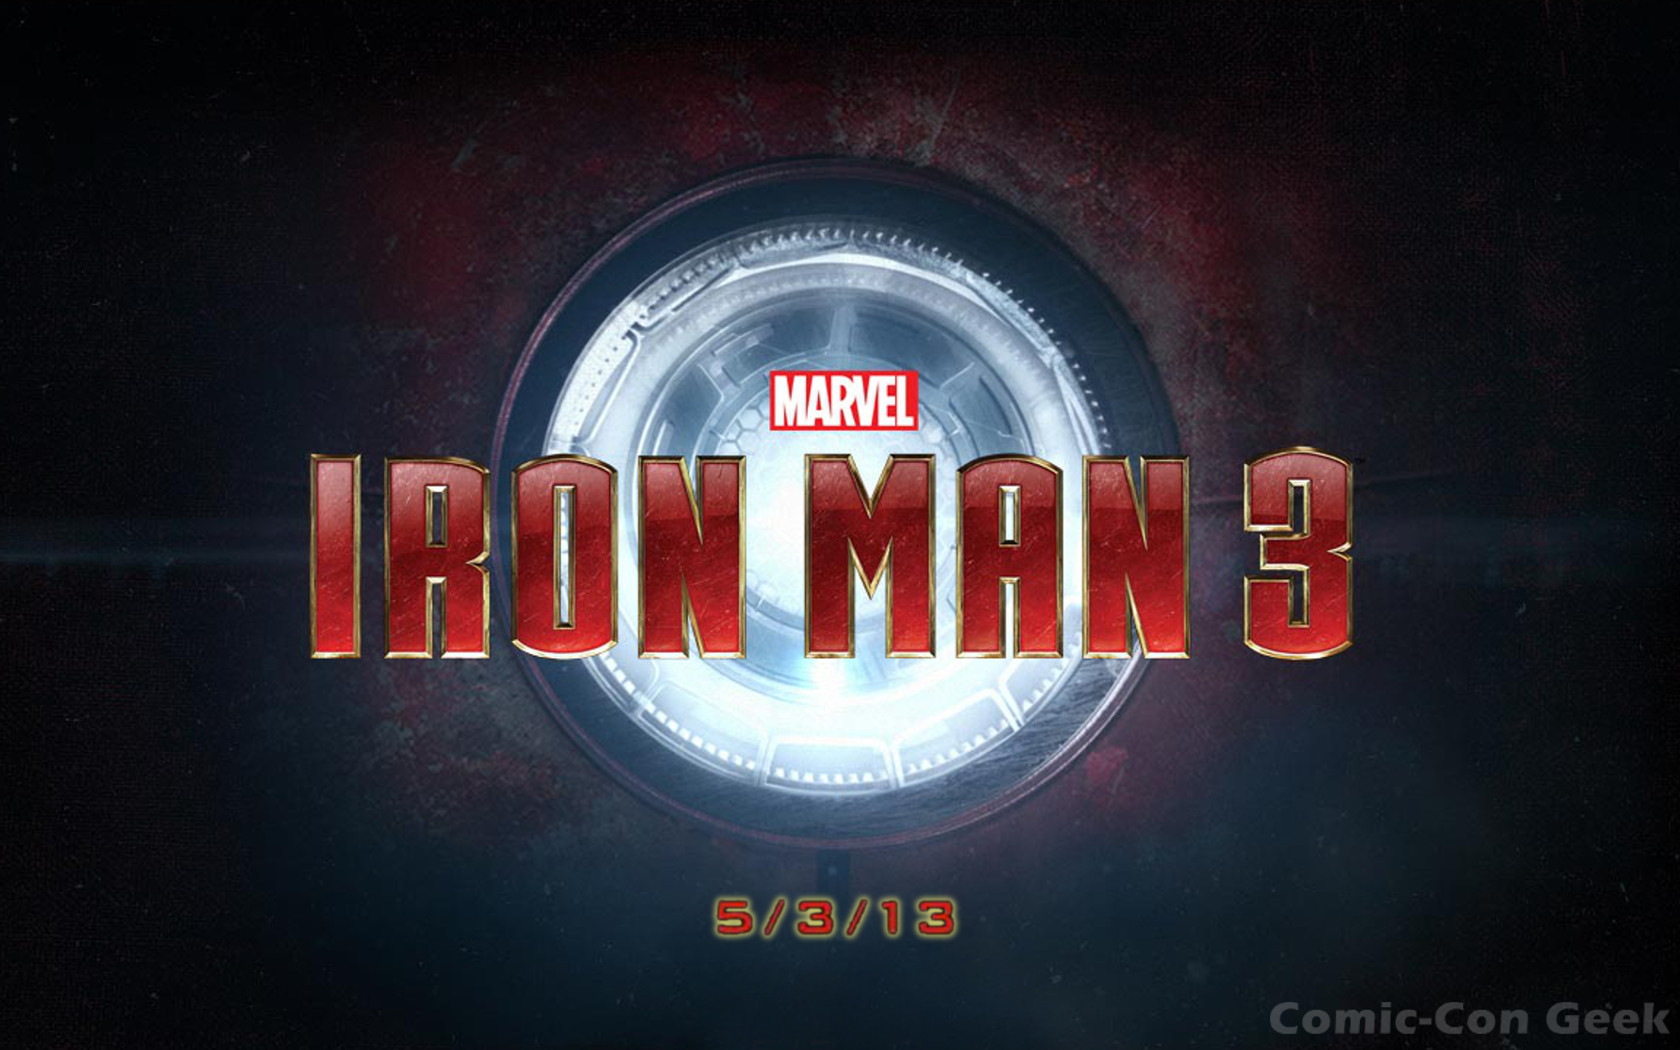 Iron man release date in Brisbane